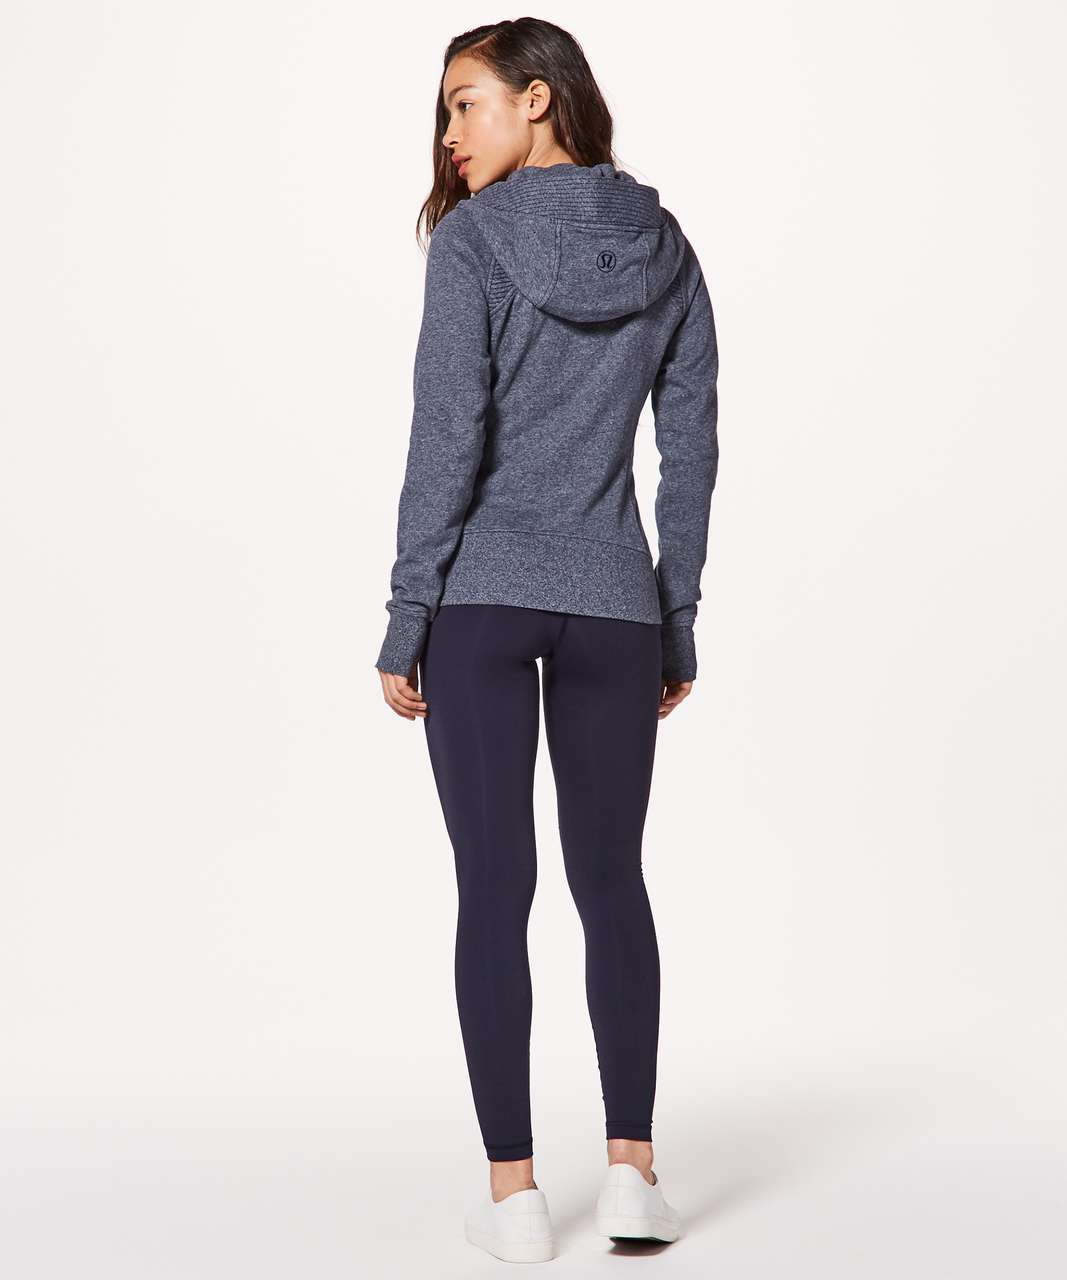 Lululemon Scuba Hoodie *Light Cotton Fleece Sashiko - Heathered Speckled True Navy / True Navy